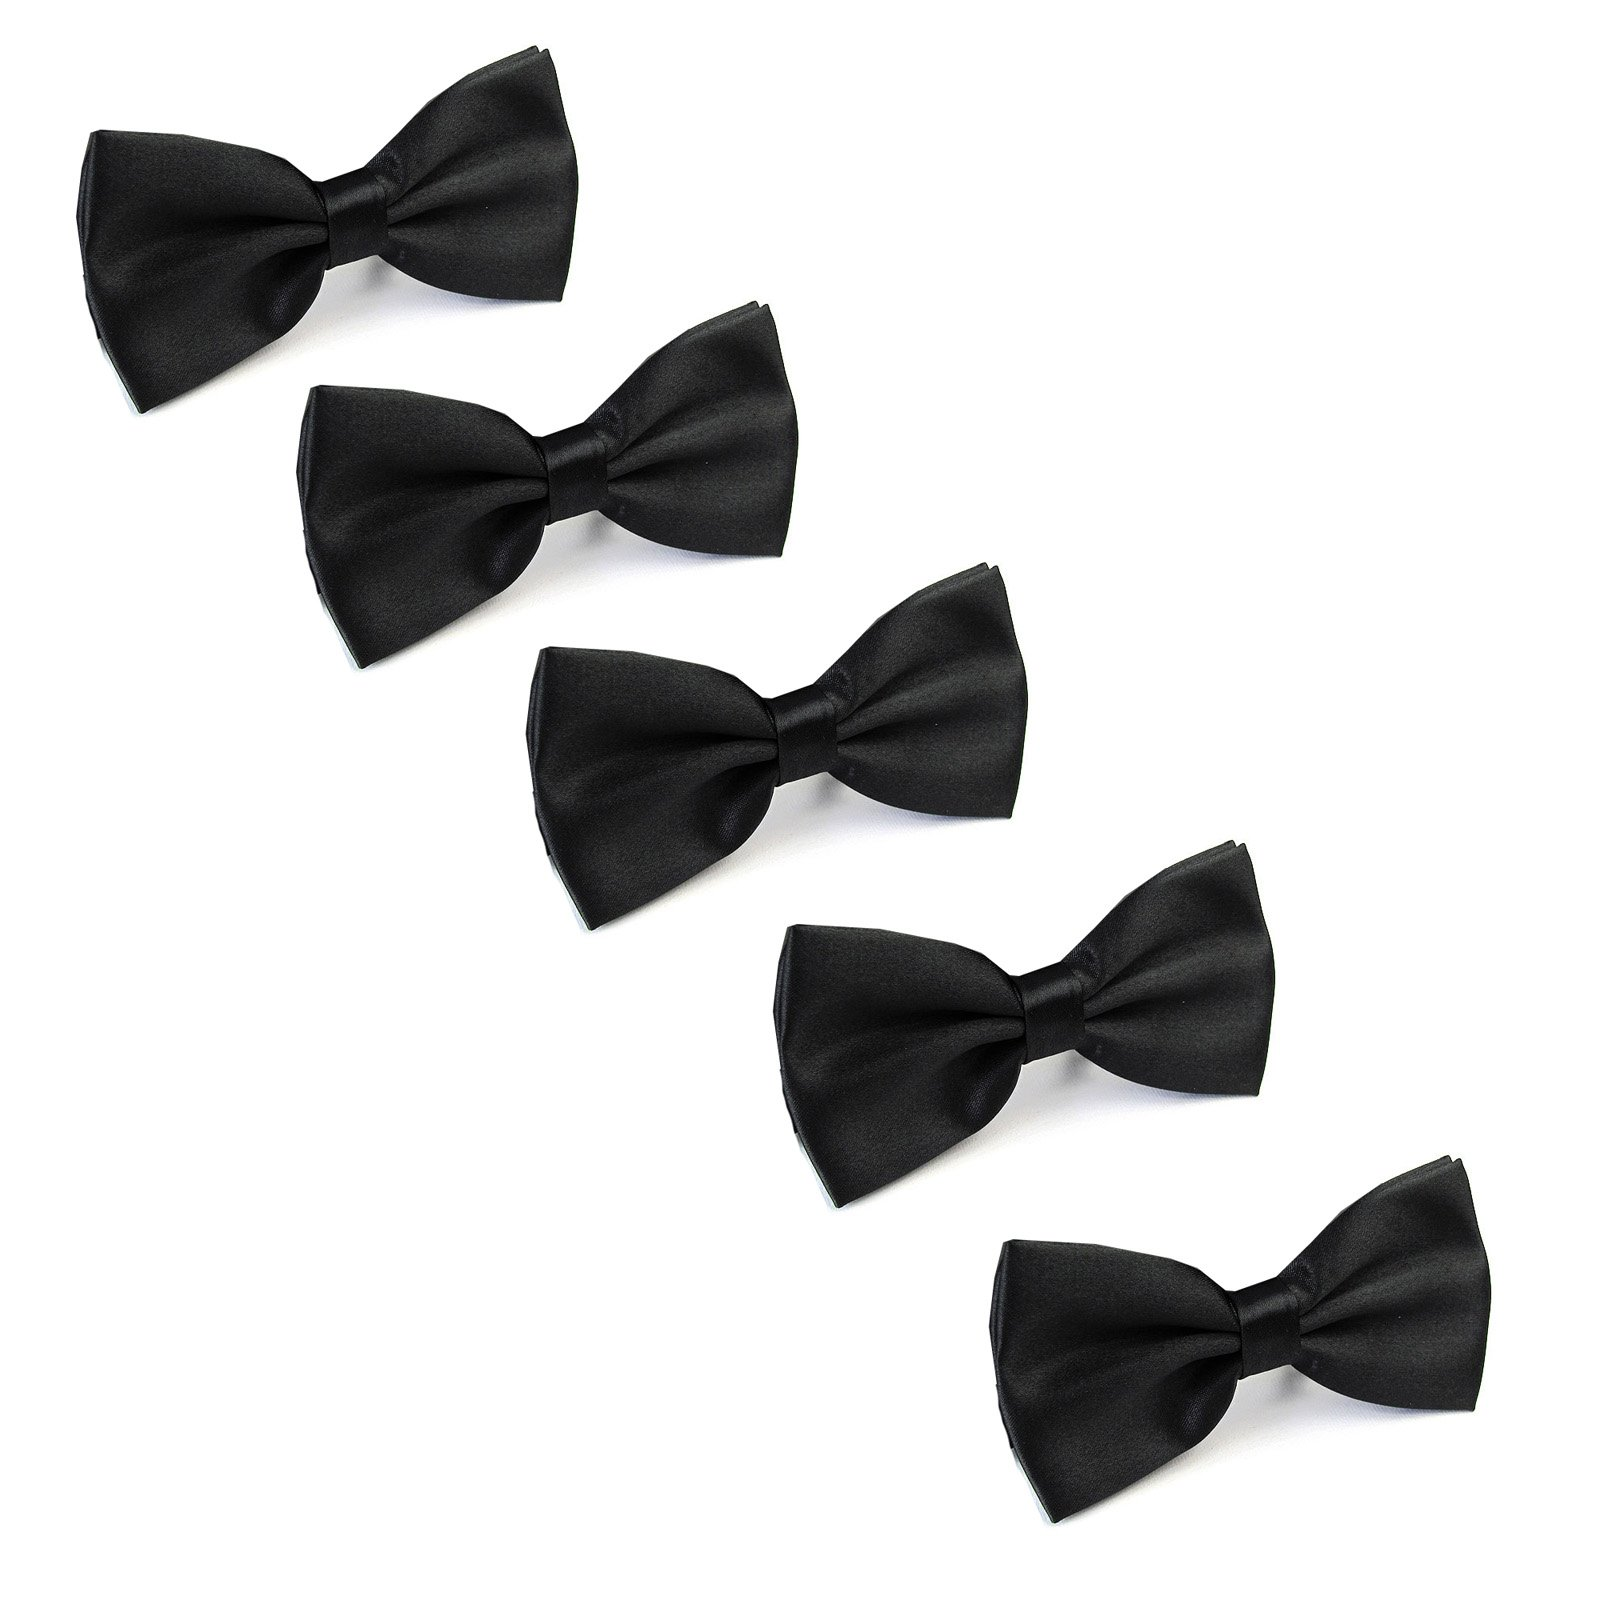 Boys Child Kids Bow ties - Adjustable Pre Tied Solid Color Wedding Party Bowties,5 Pieces (Black-5 Pieces)